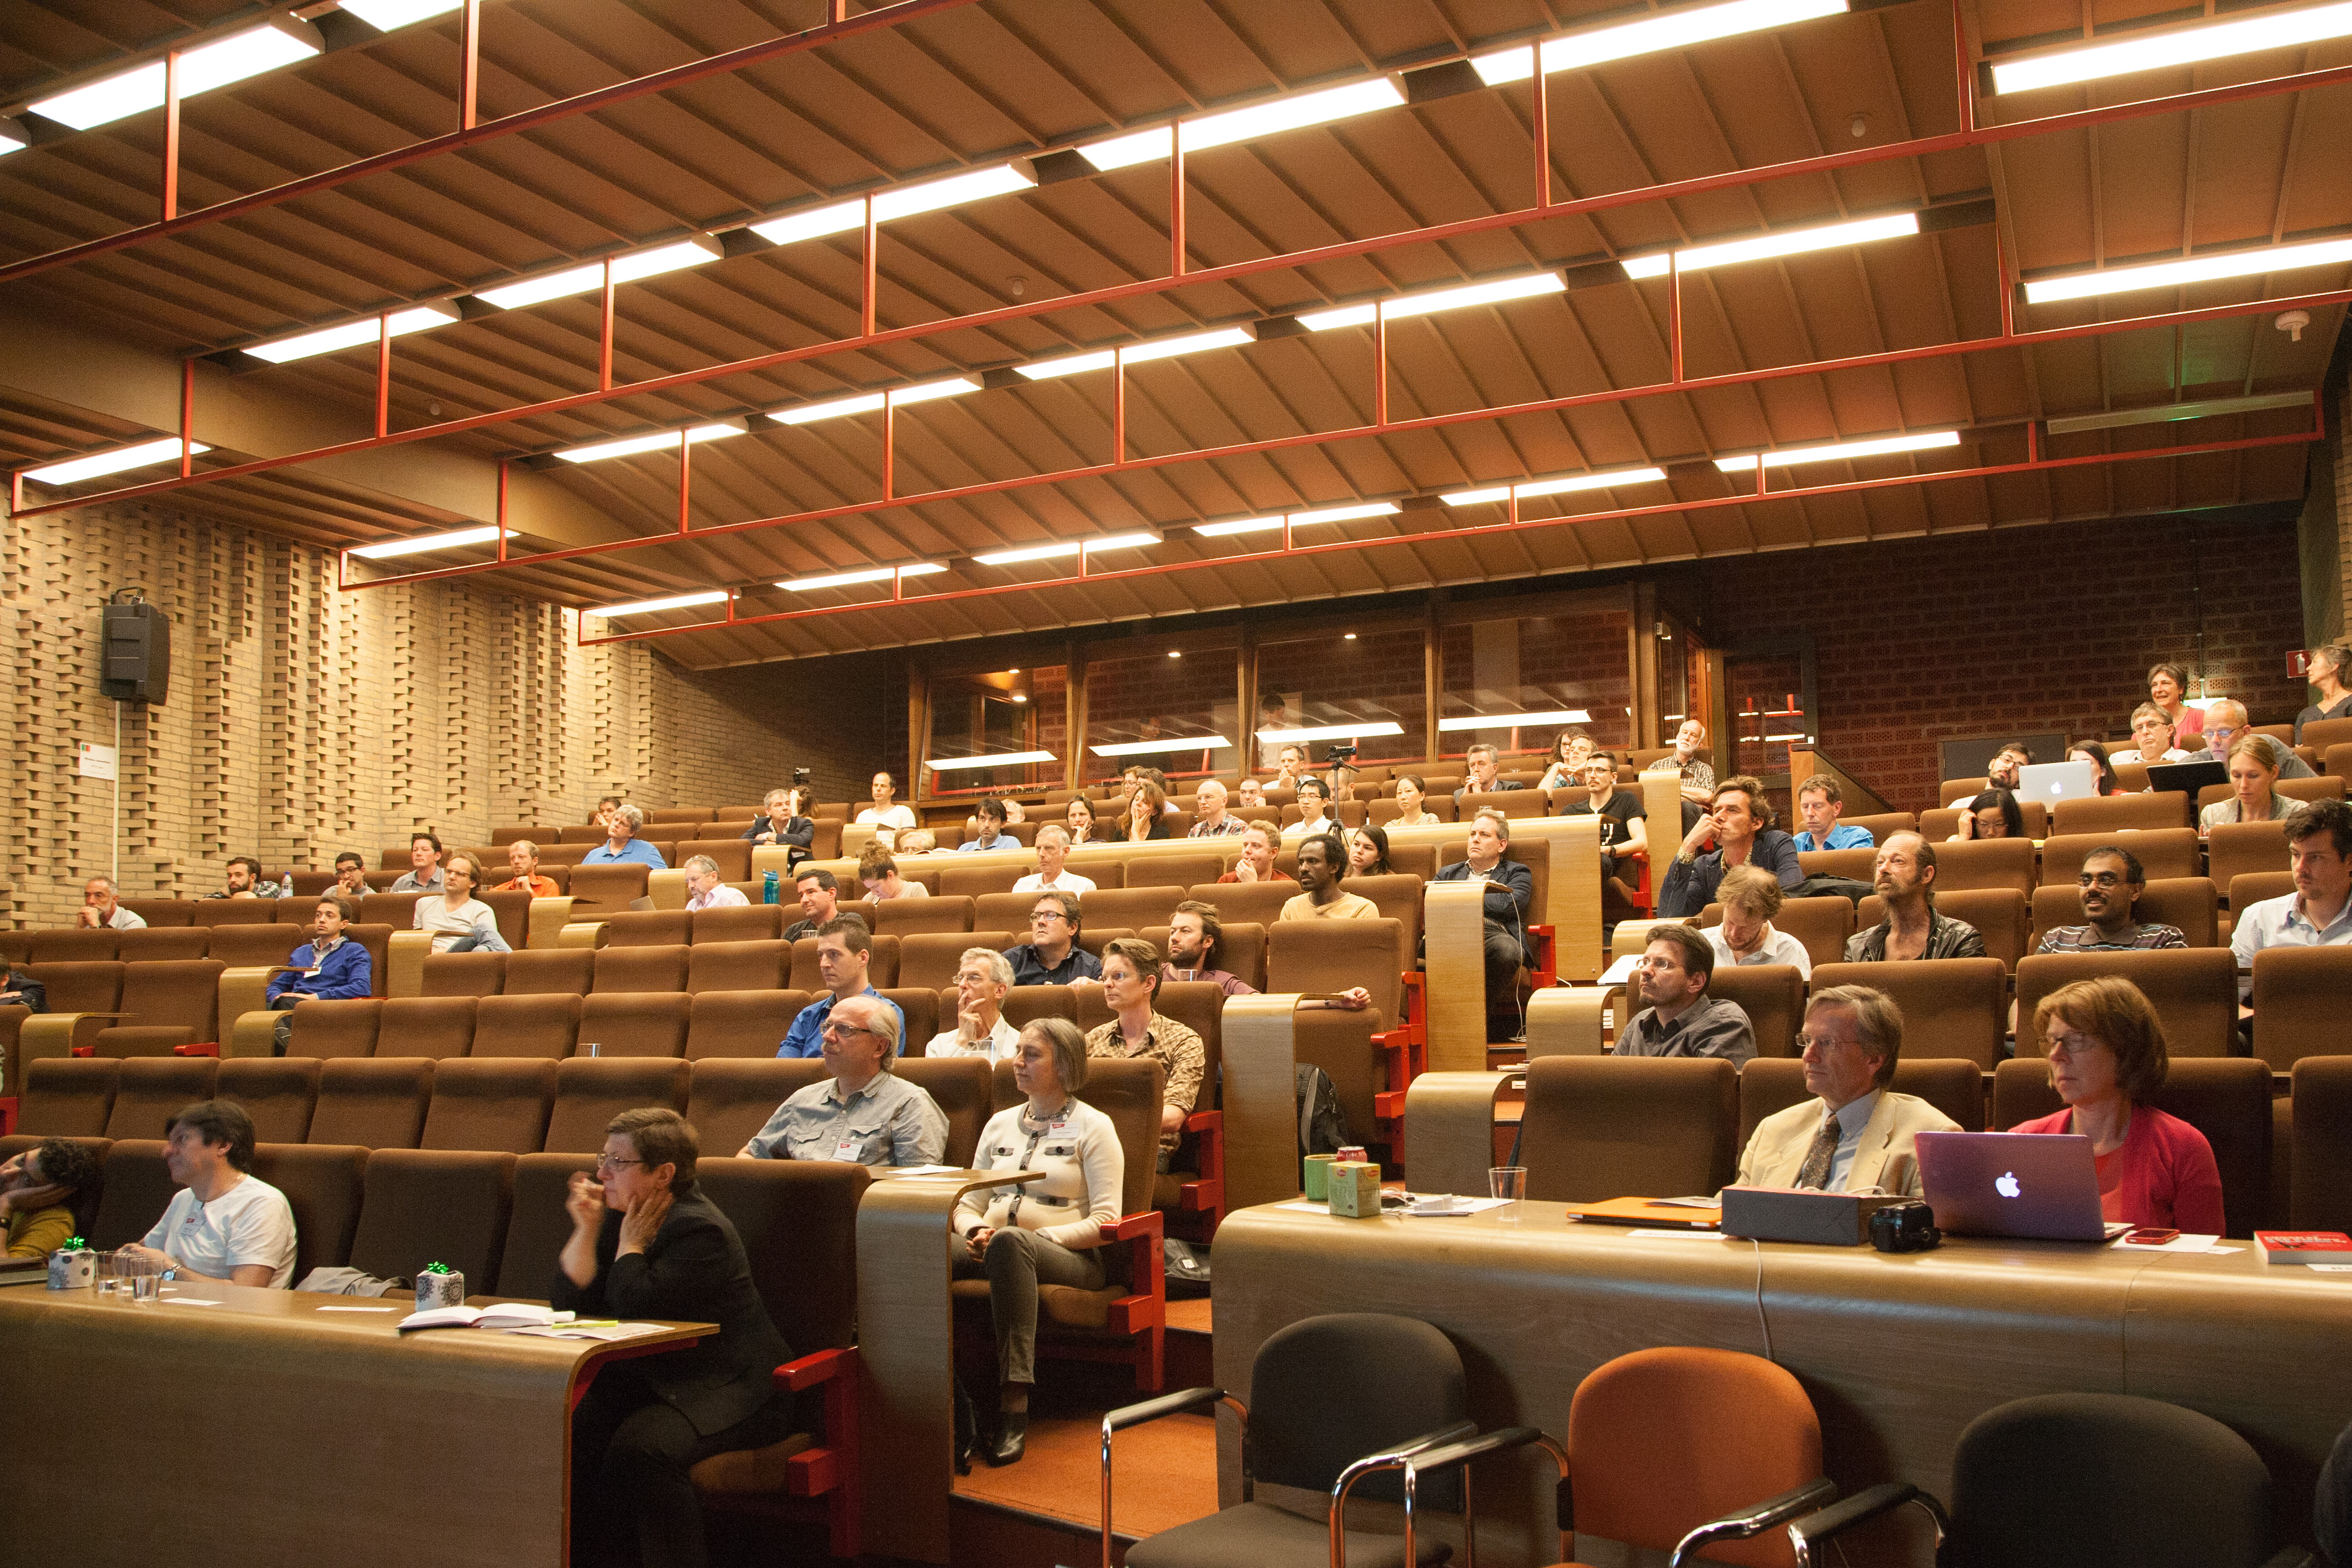 Lectures audience